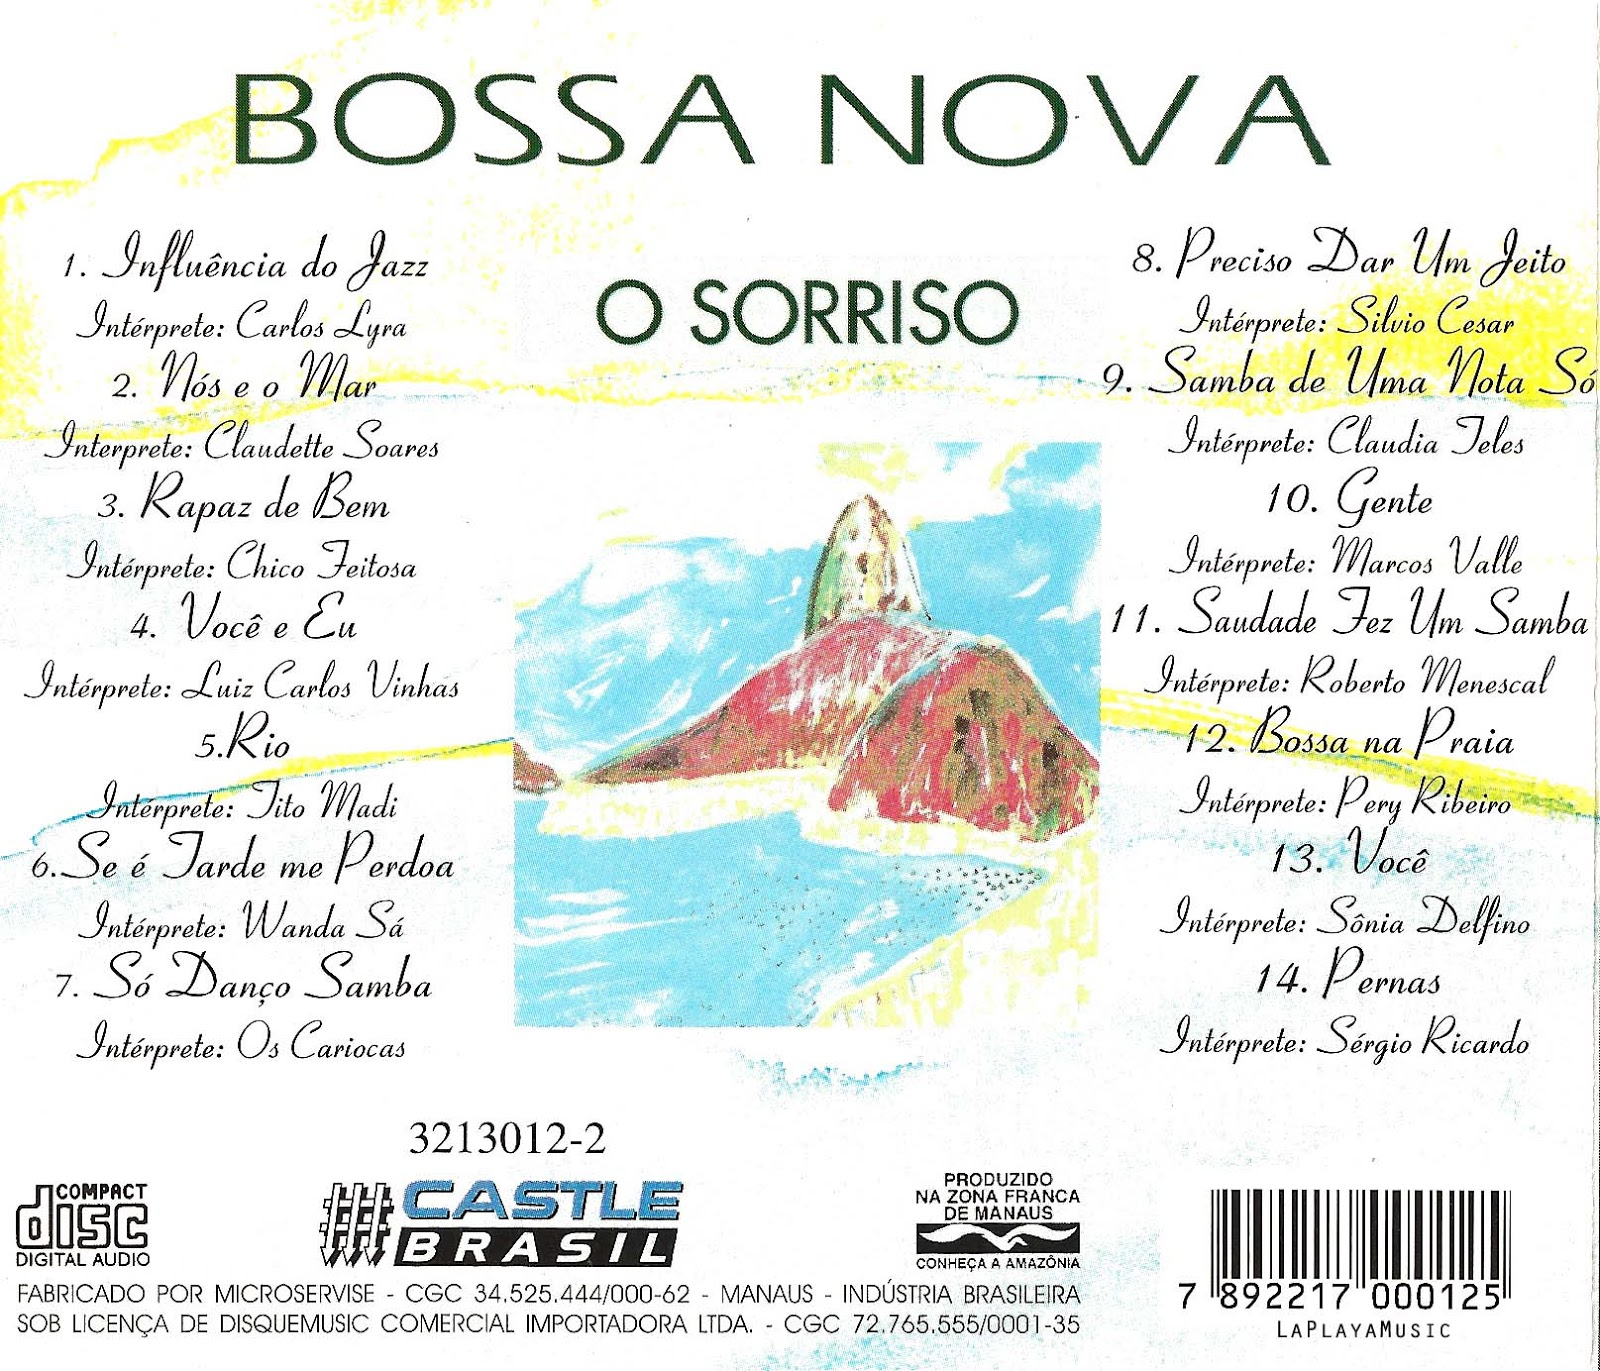 bossa nova Find album reviews, stream songs, credits and award information for bossa nova - carlos lyra on allmusic - 1961 - though not as internationally well known as some.